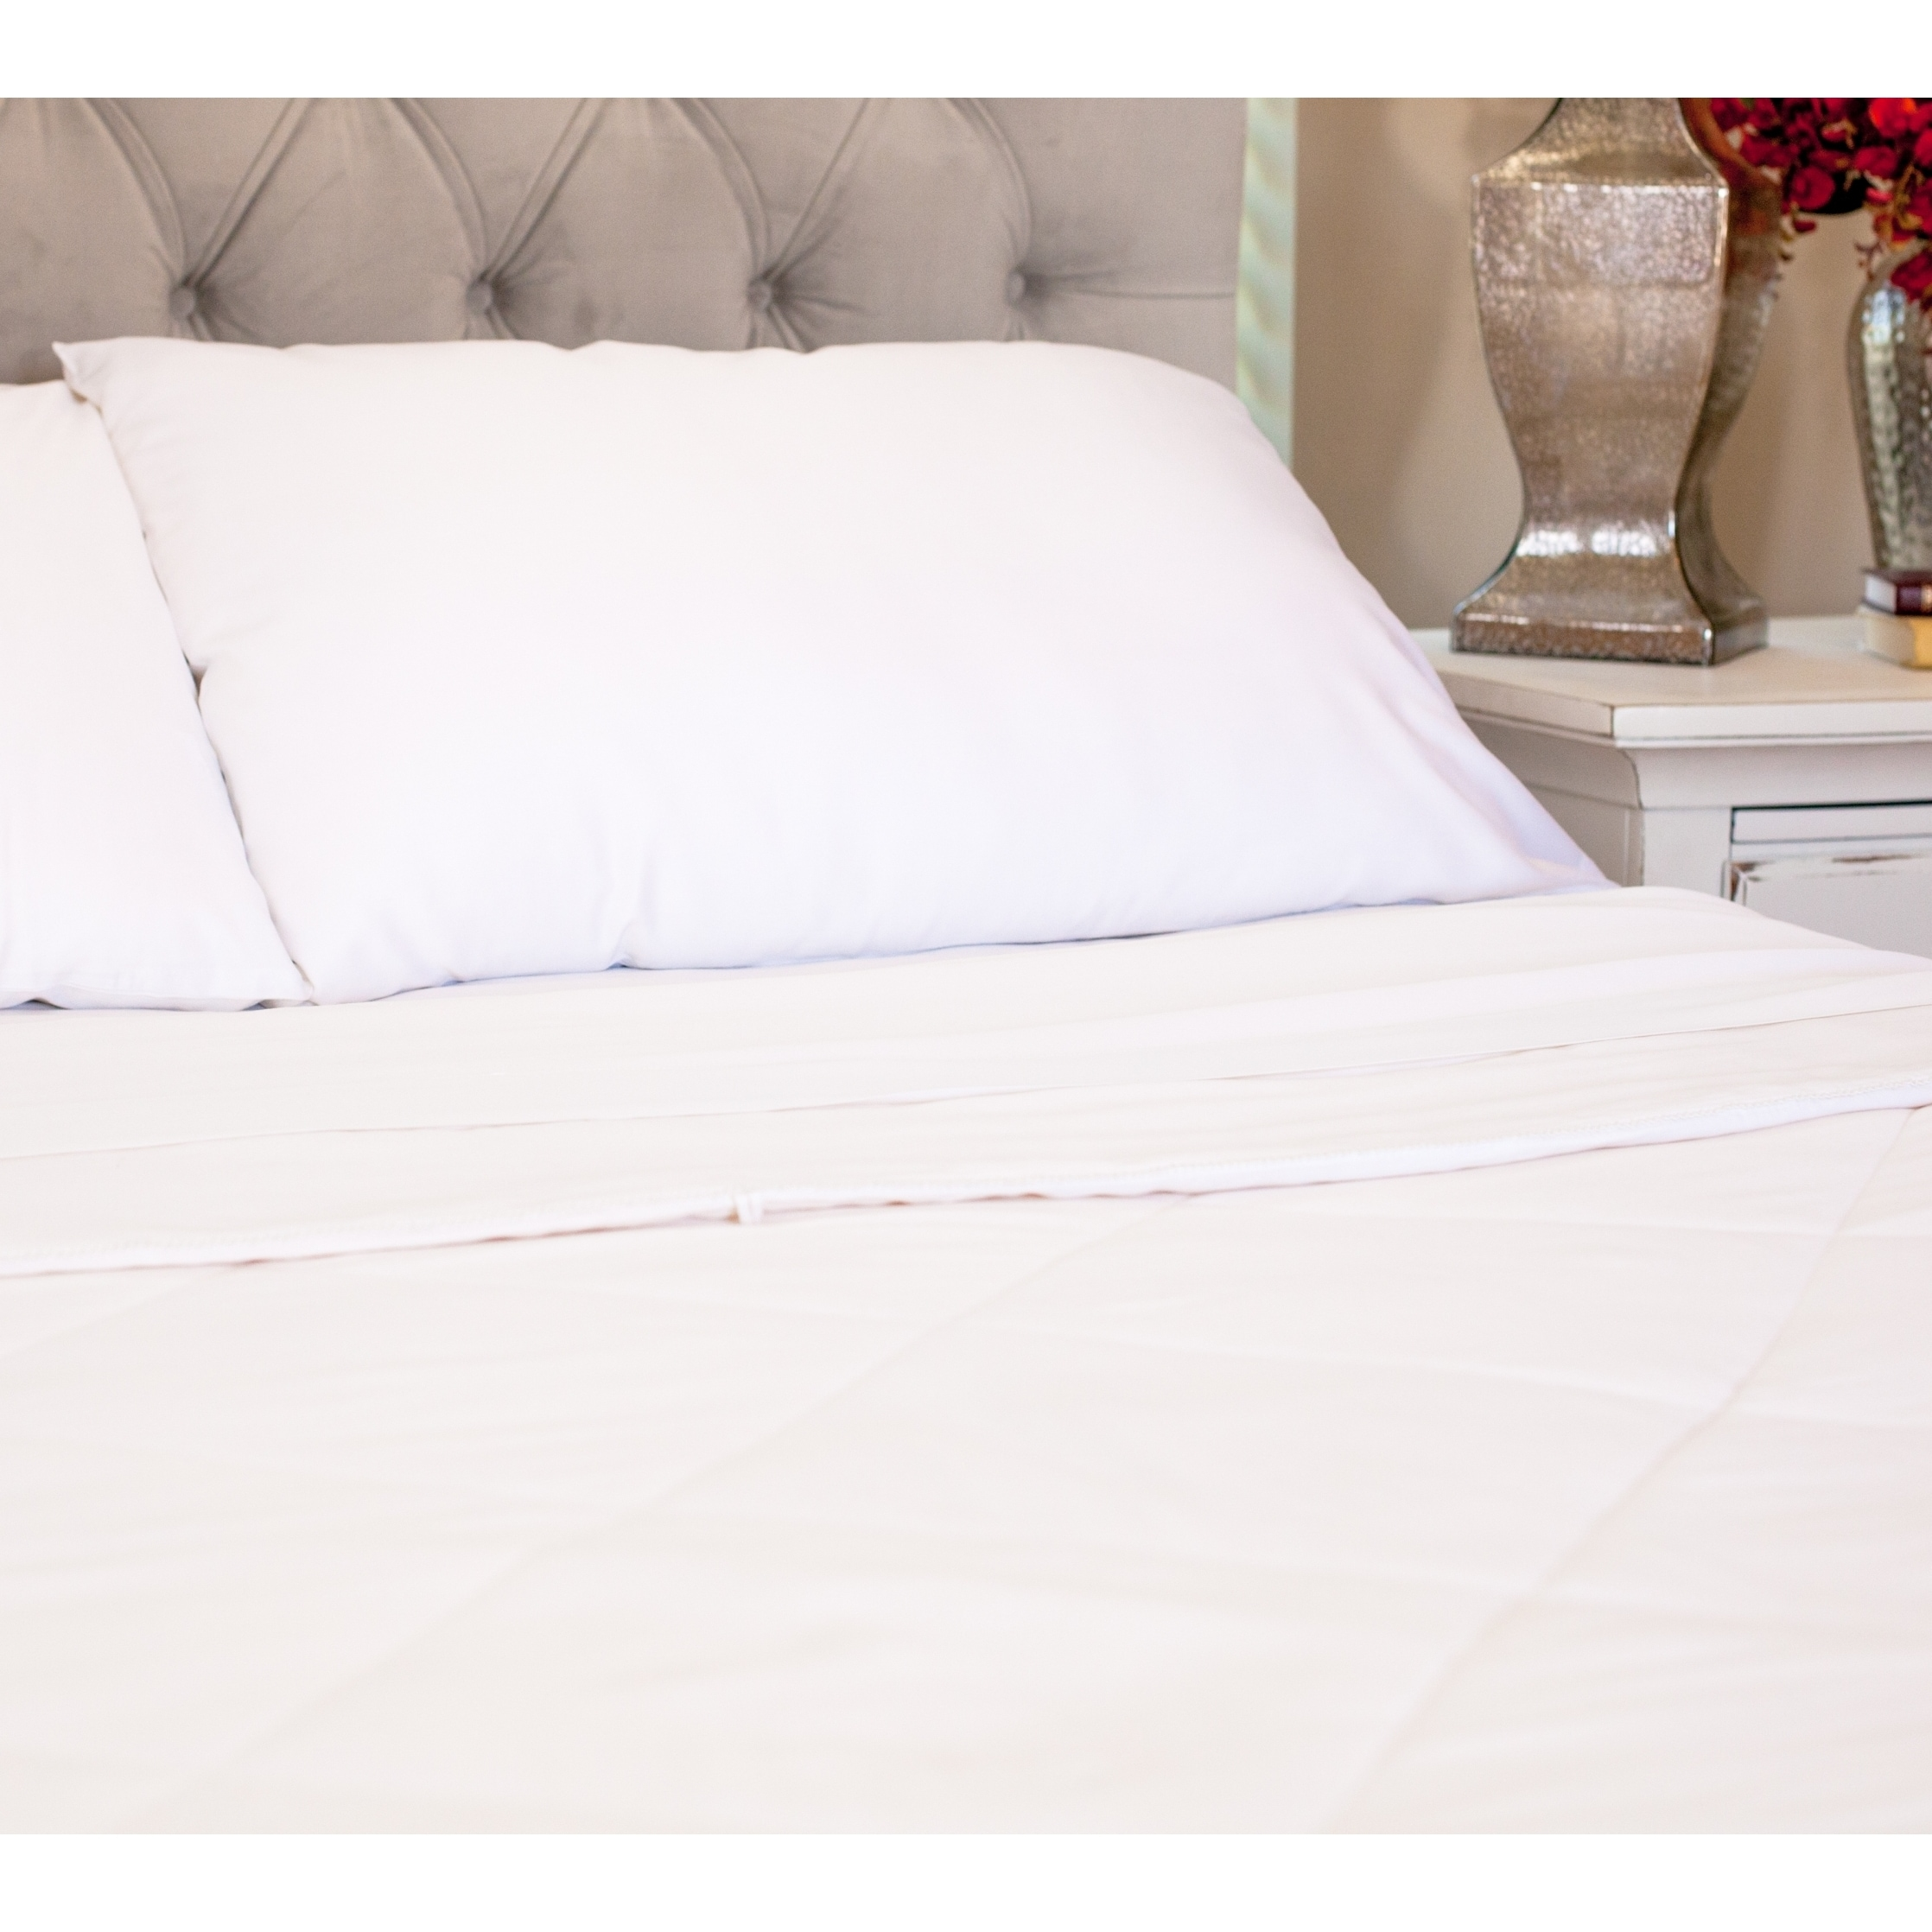 sheets comfort bamboo watermark comforter breathability and pure bsm luxury products duvet silk for mulberry more lightness